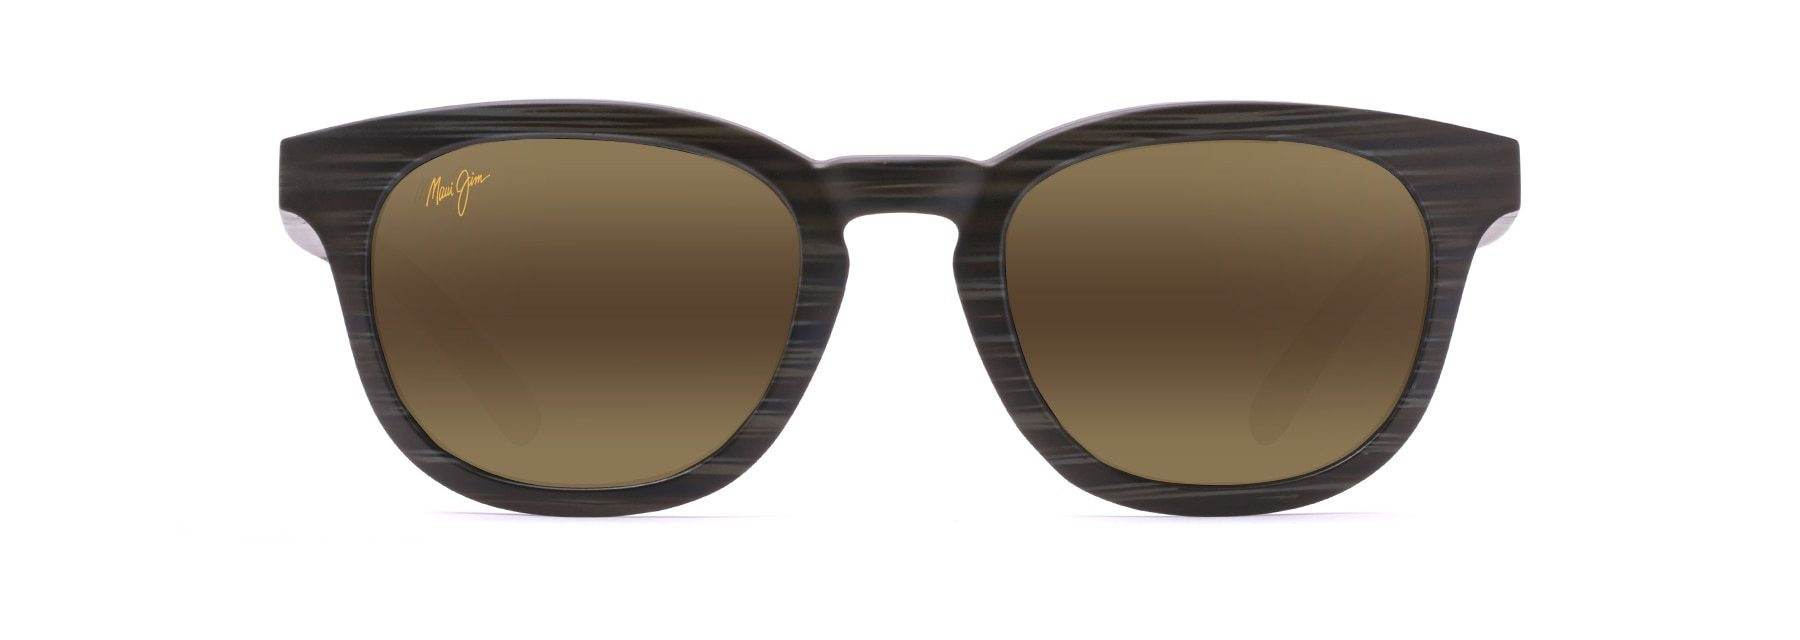 MyMaui Koko Head MM737-013 Sunglasses